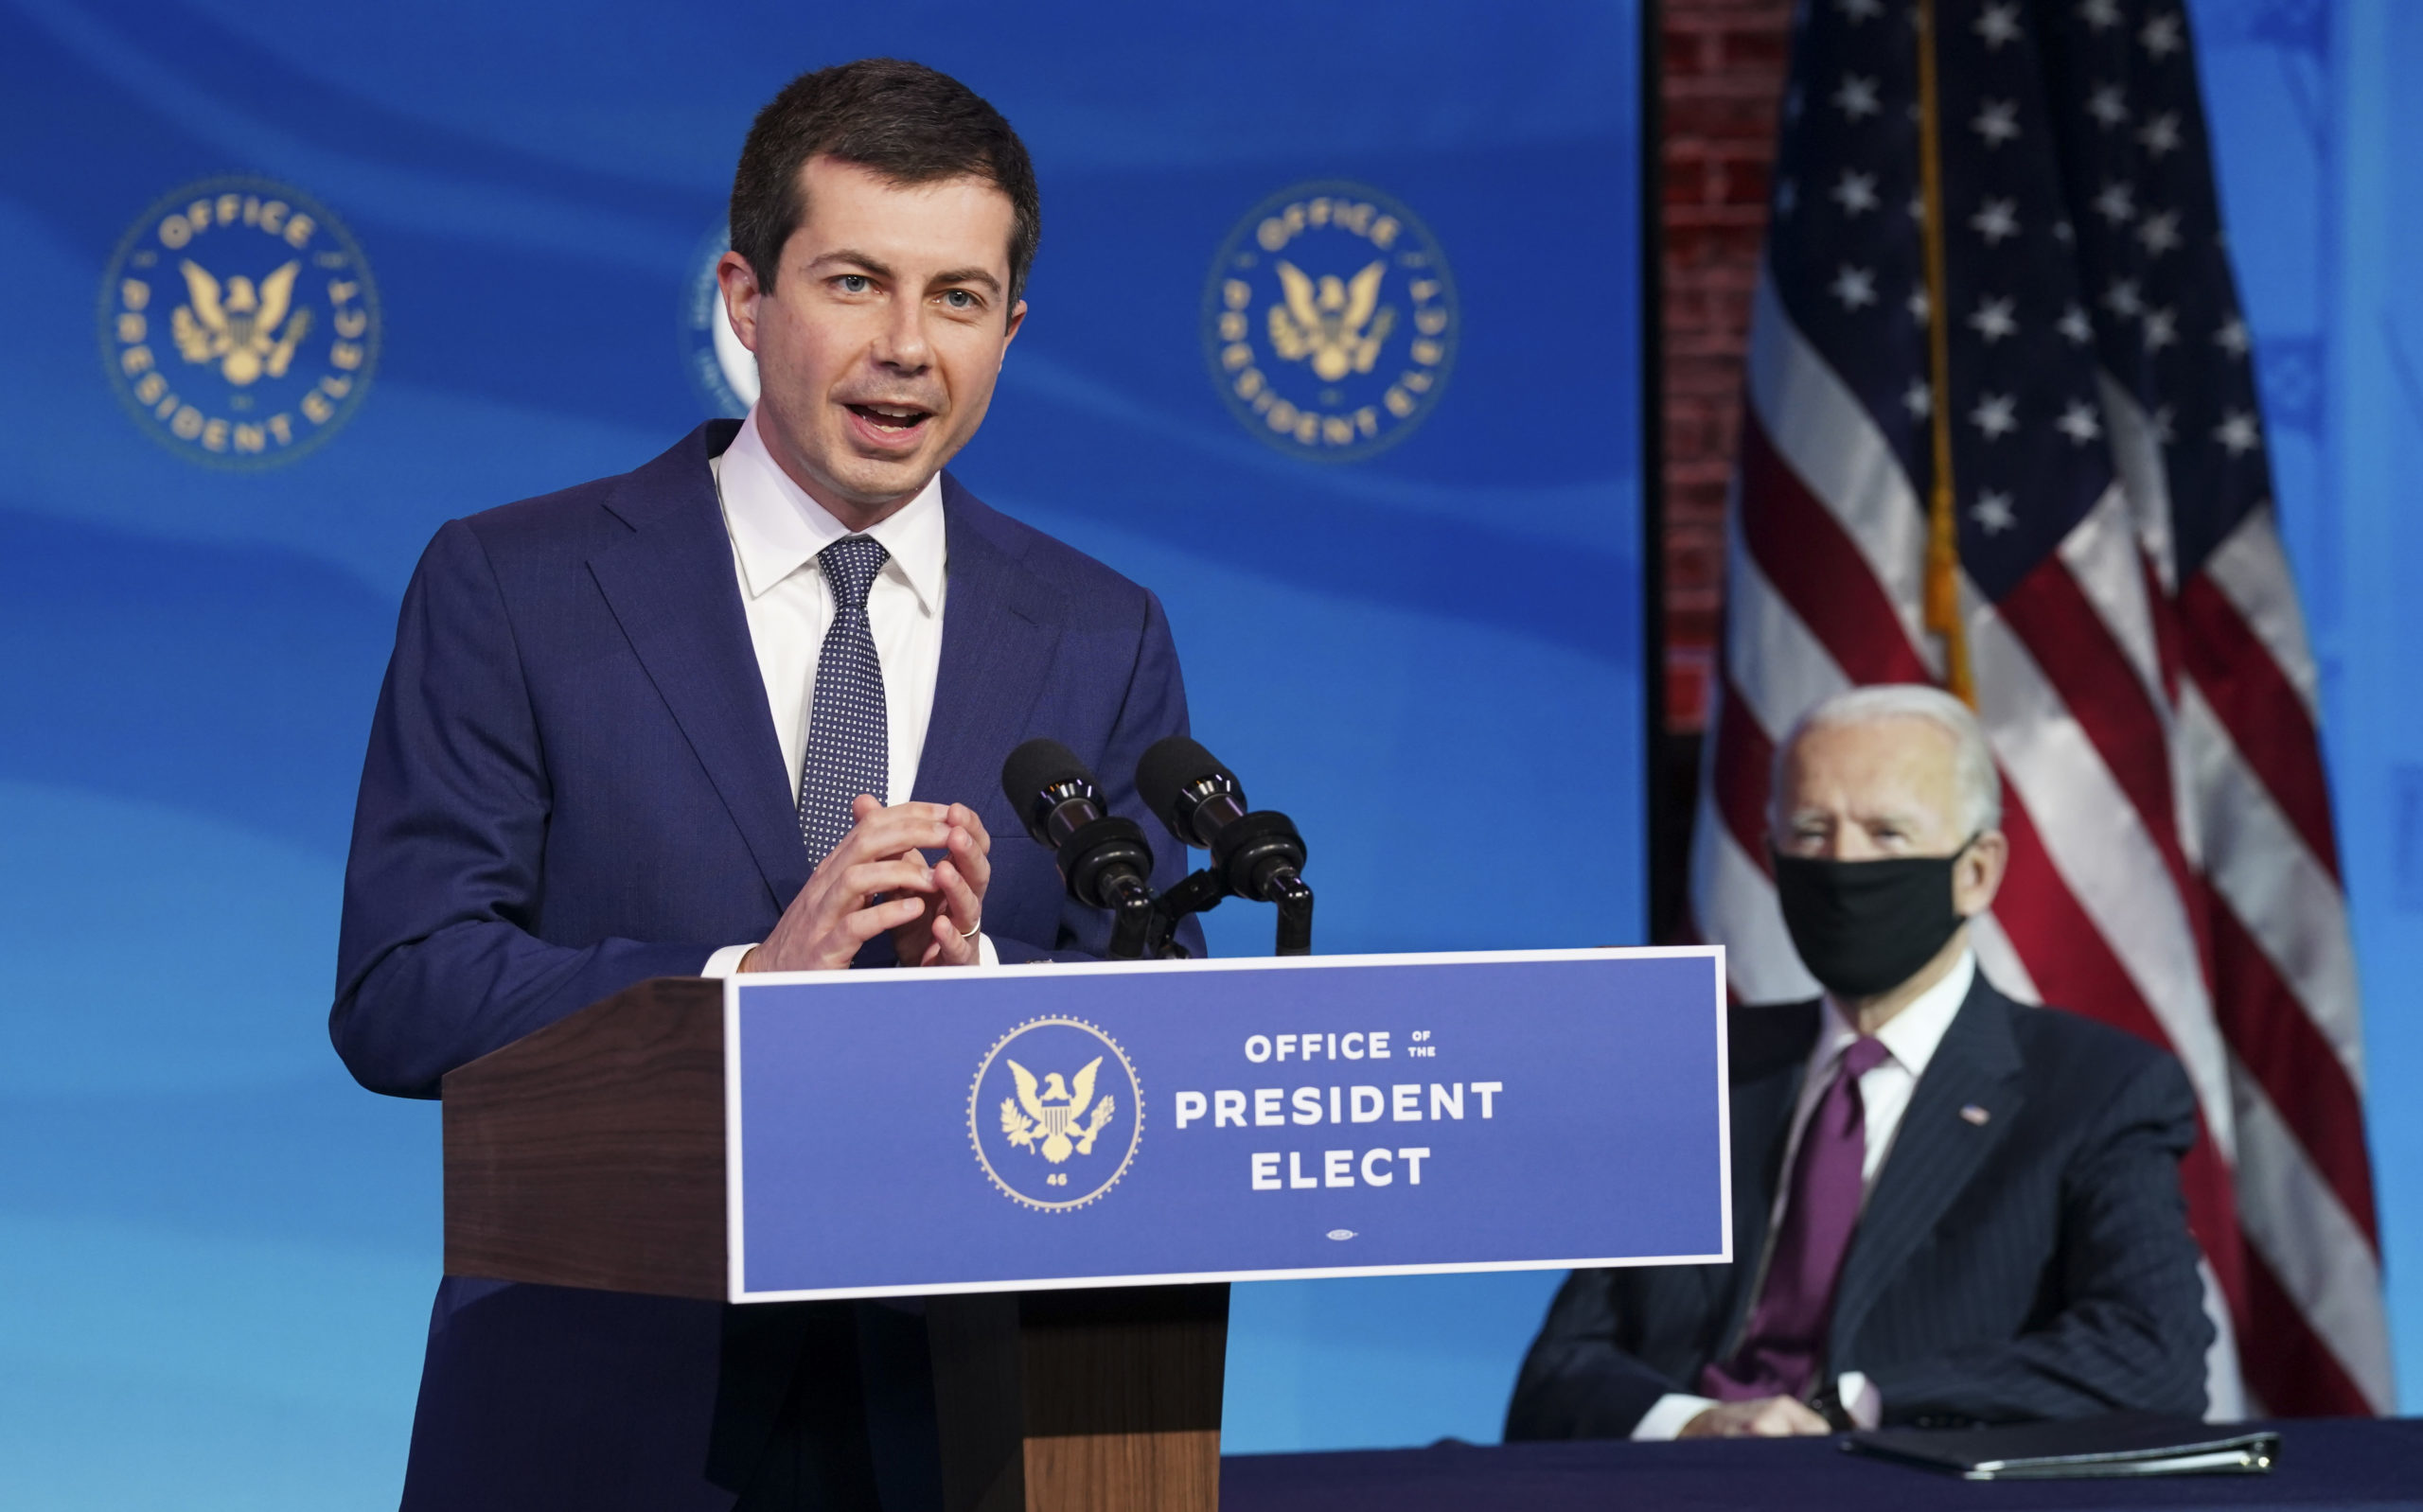 Former South Bend, Indiana Mayor Pete Buttigieg speaks in Wilmington, Delaware on Dec. 16. (Kevin Lamarque/Pool/AFP via Getty Images)